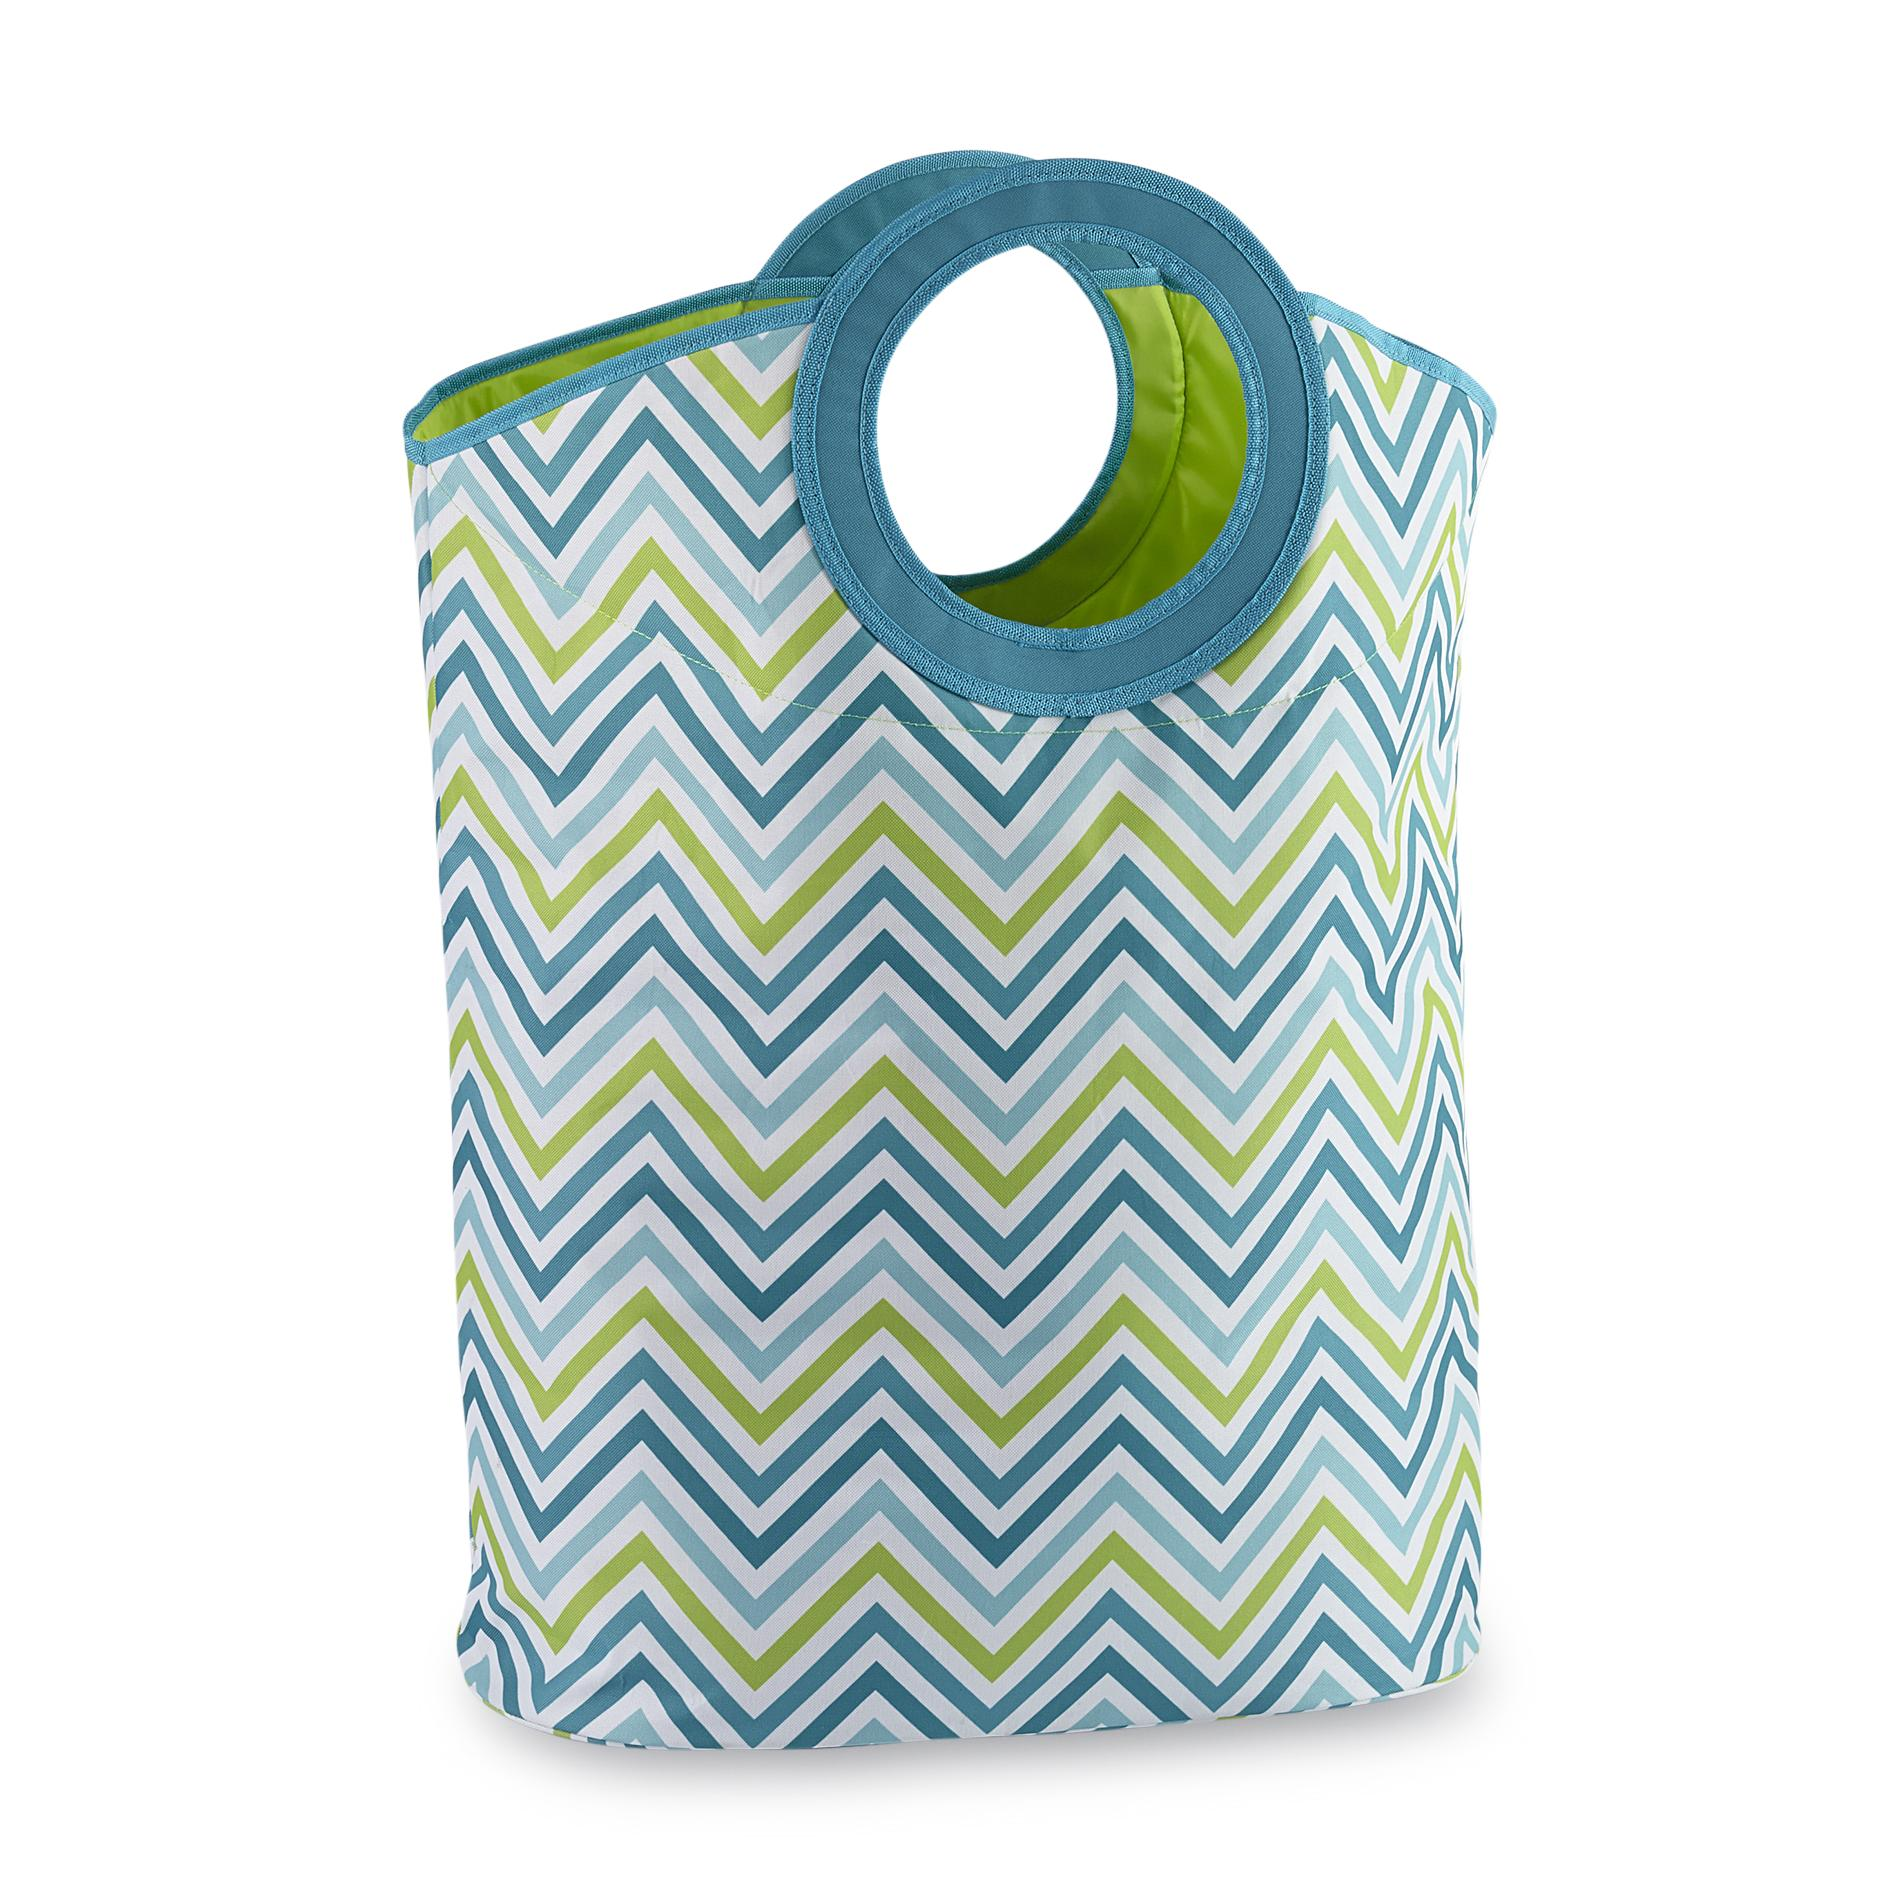 Canvas Hamper Bags Planet 3 Chevron Striped Canvas Carry Hamper Bag Home